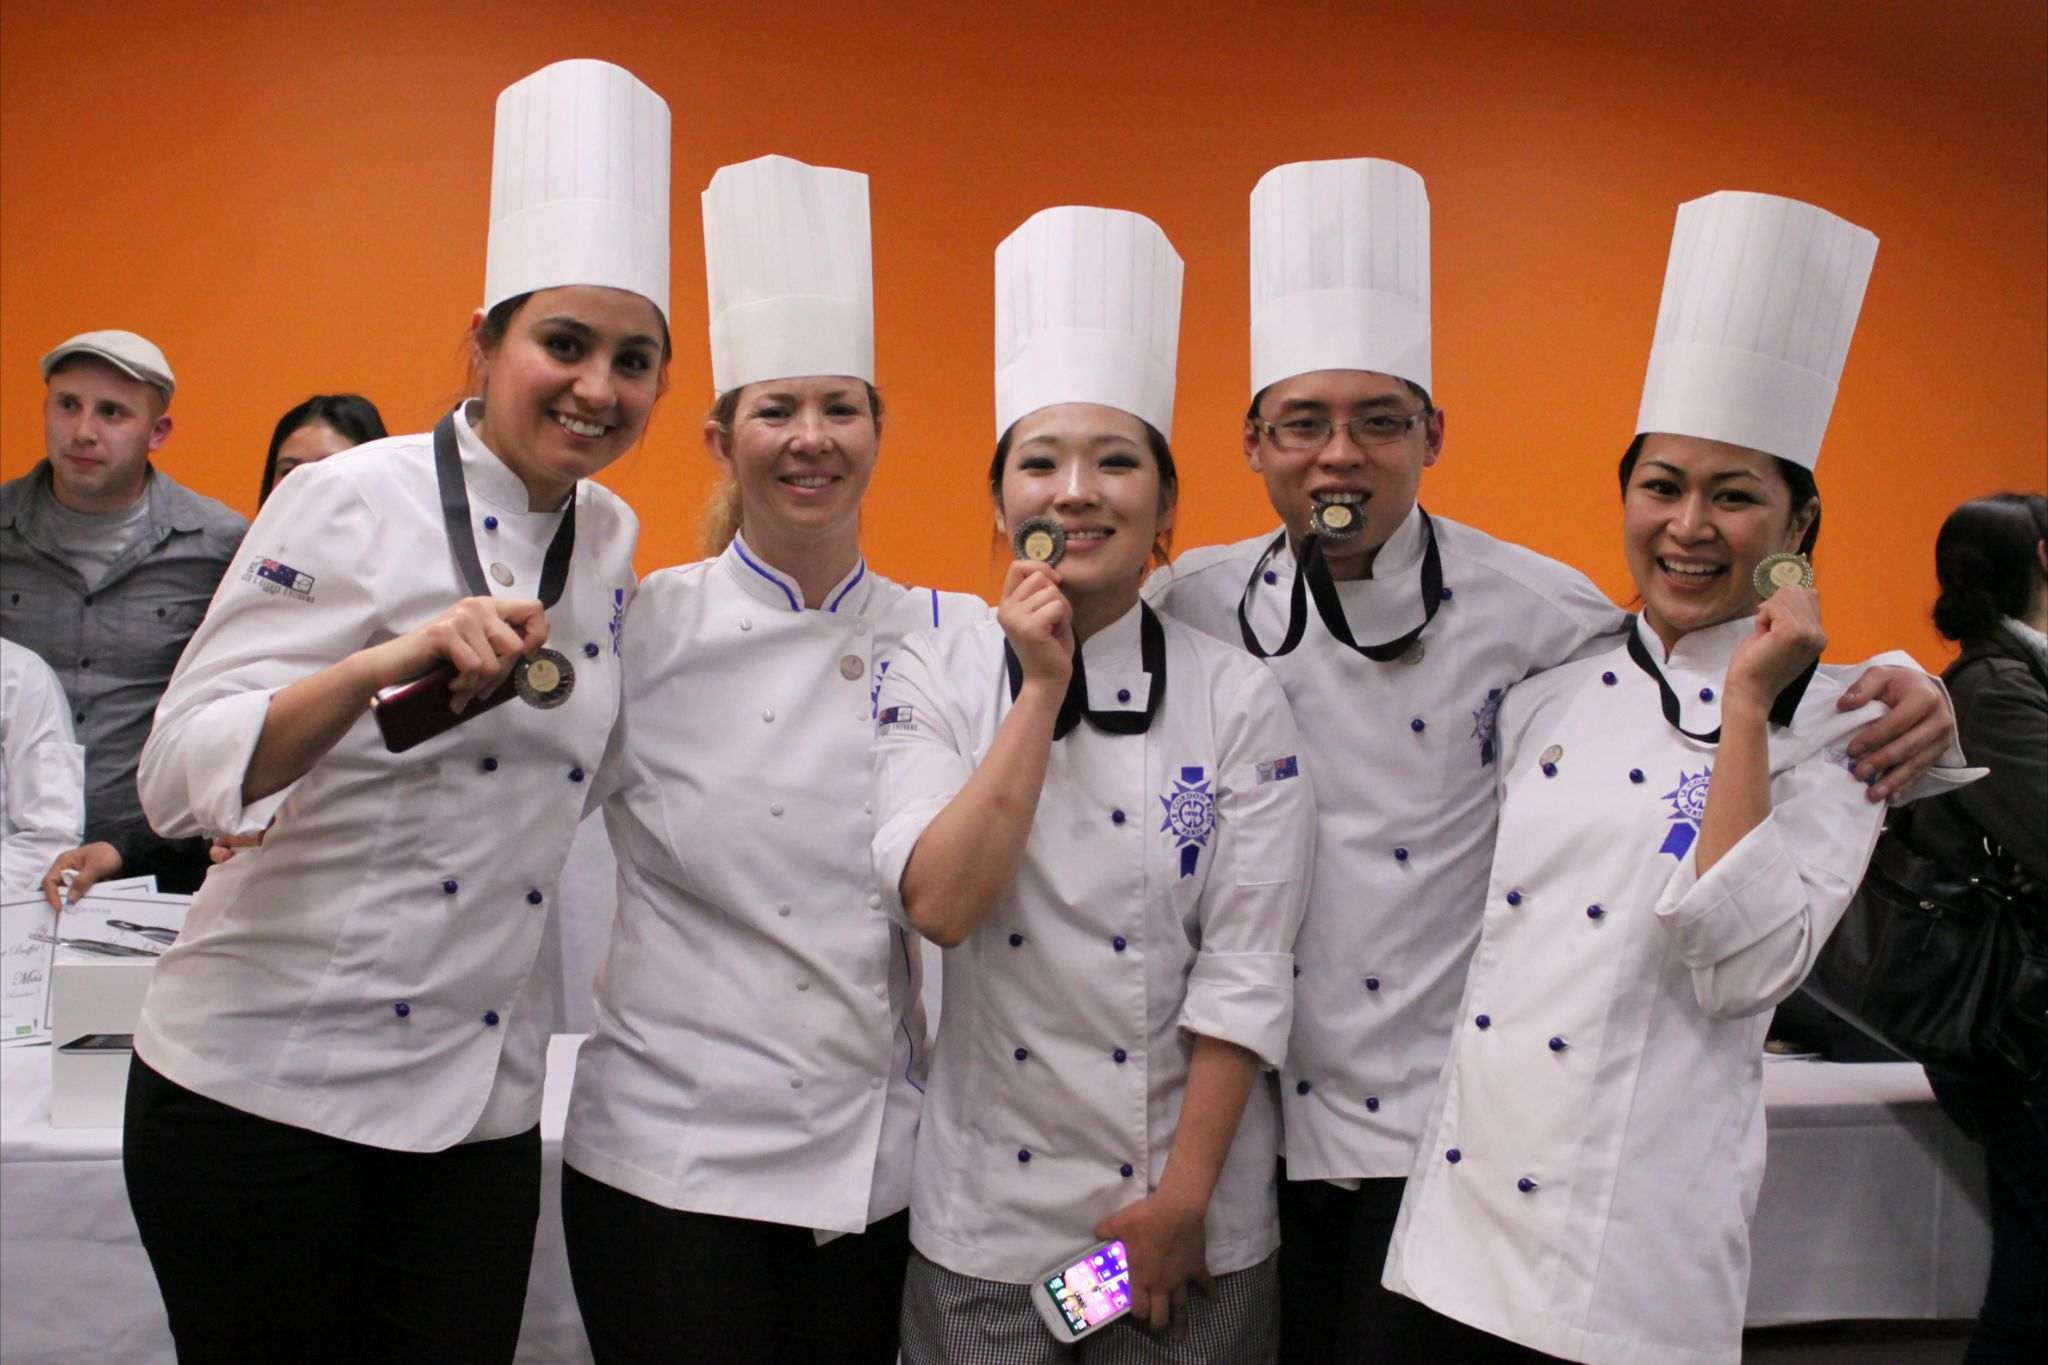 In September 2012 Four Cuisine Students From Le Cordon Bleu Australia Entered The Open Class Of The Culinary Competition At T Le Cordon Bleu Food Fair Student